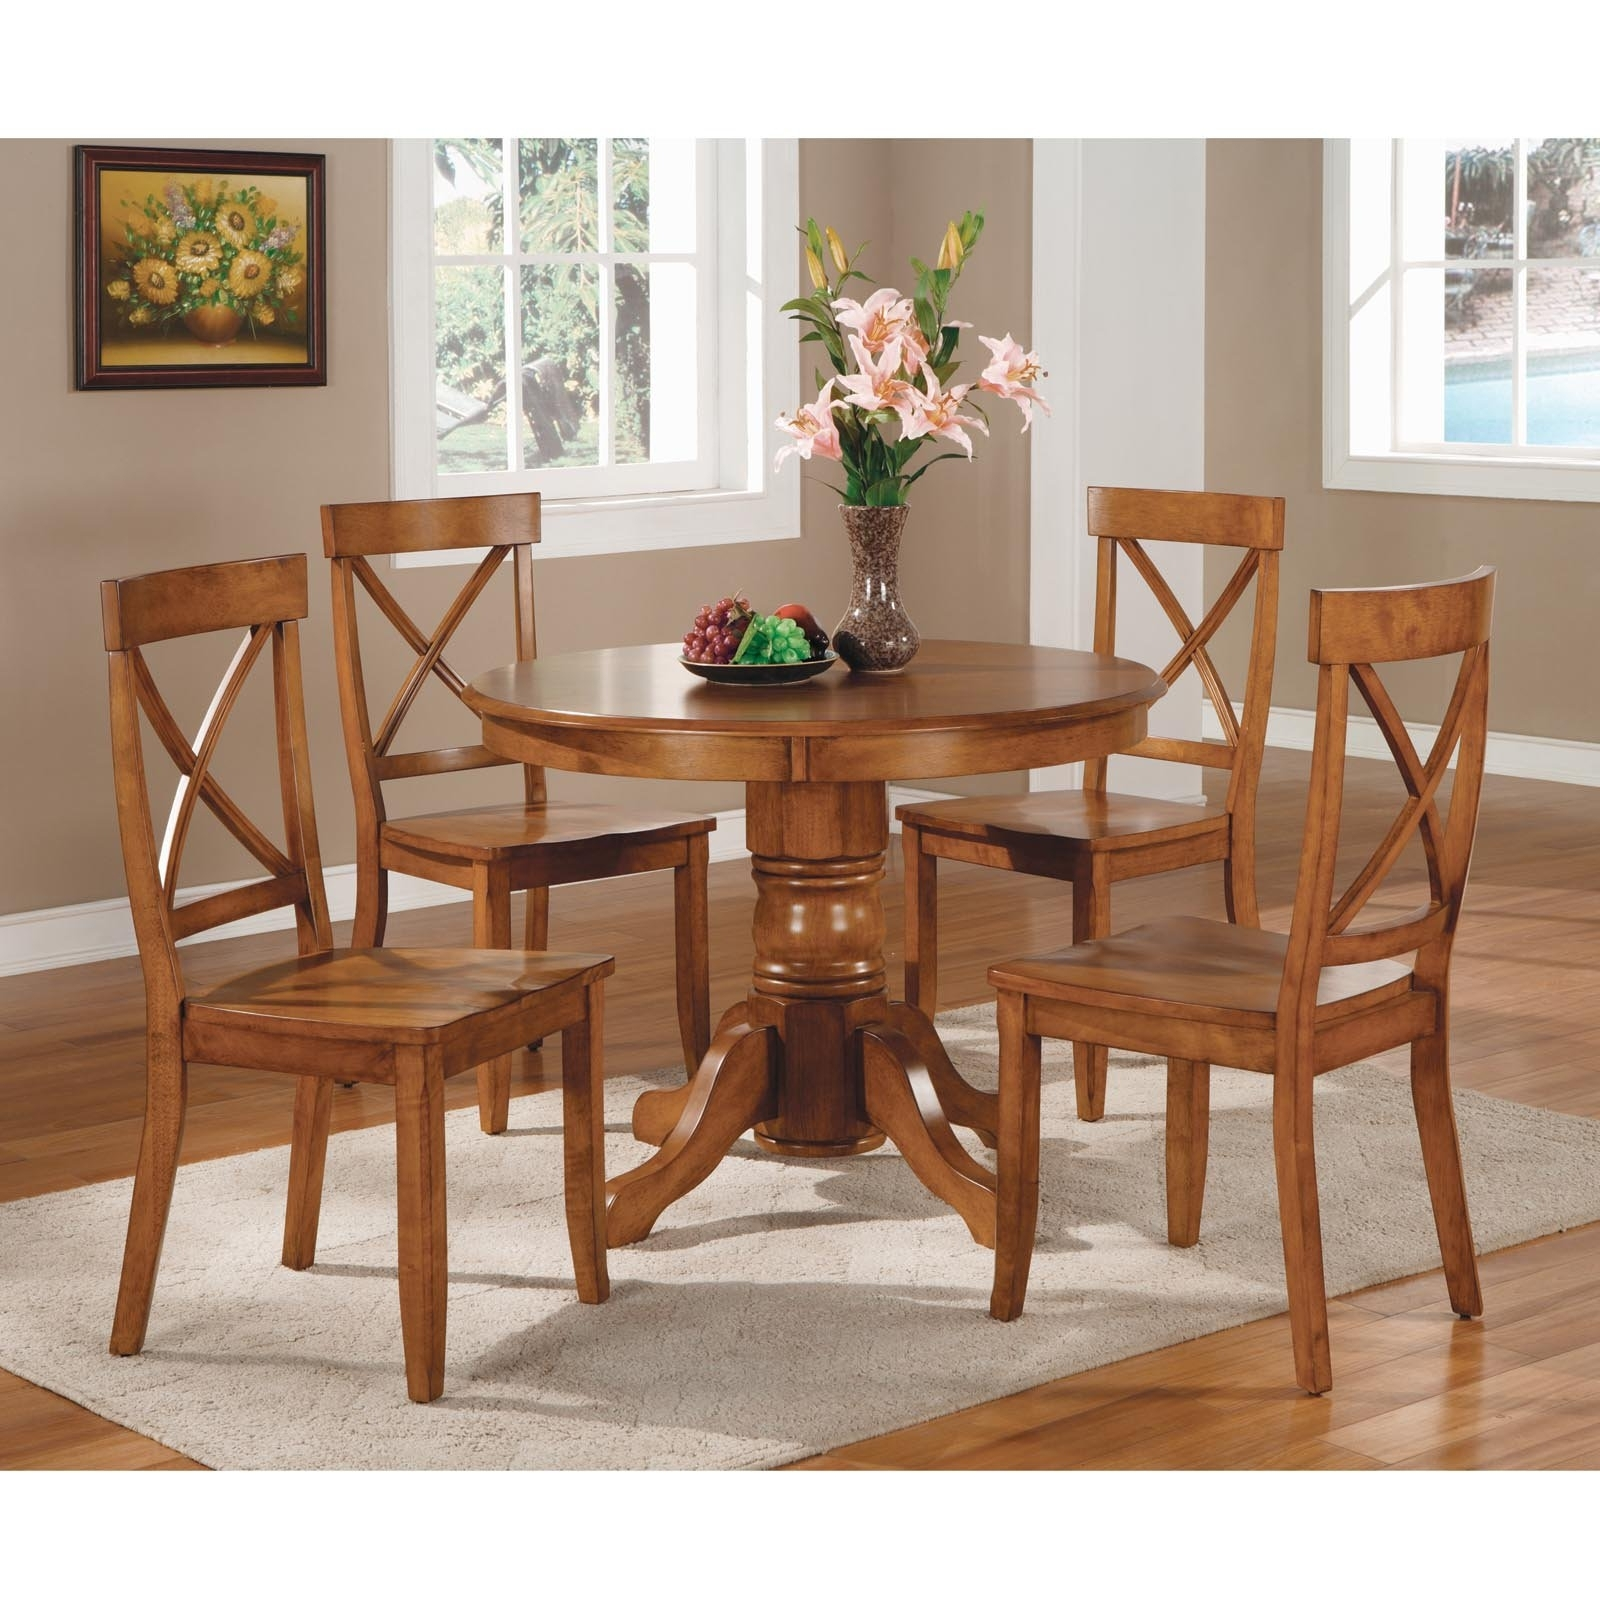 Home Styles Pedestal Dining Table, Cottage Oak - Walmart with regard to Widely used Pedestal Dining Tables And Chairs